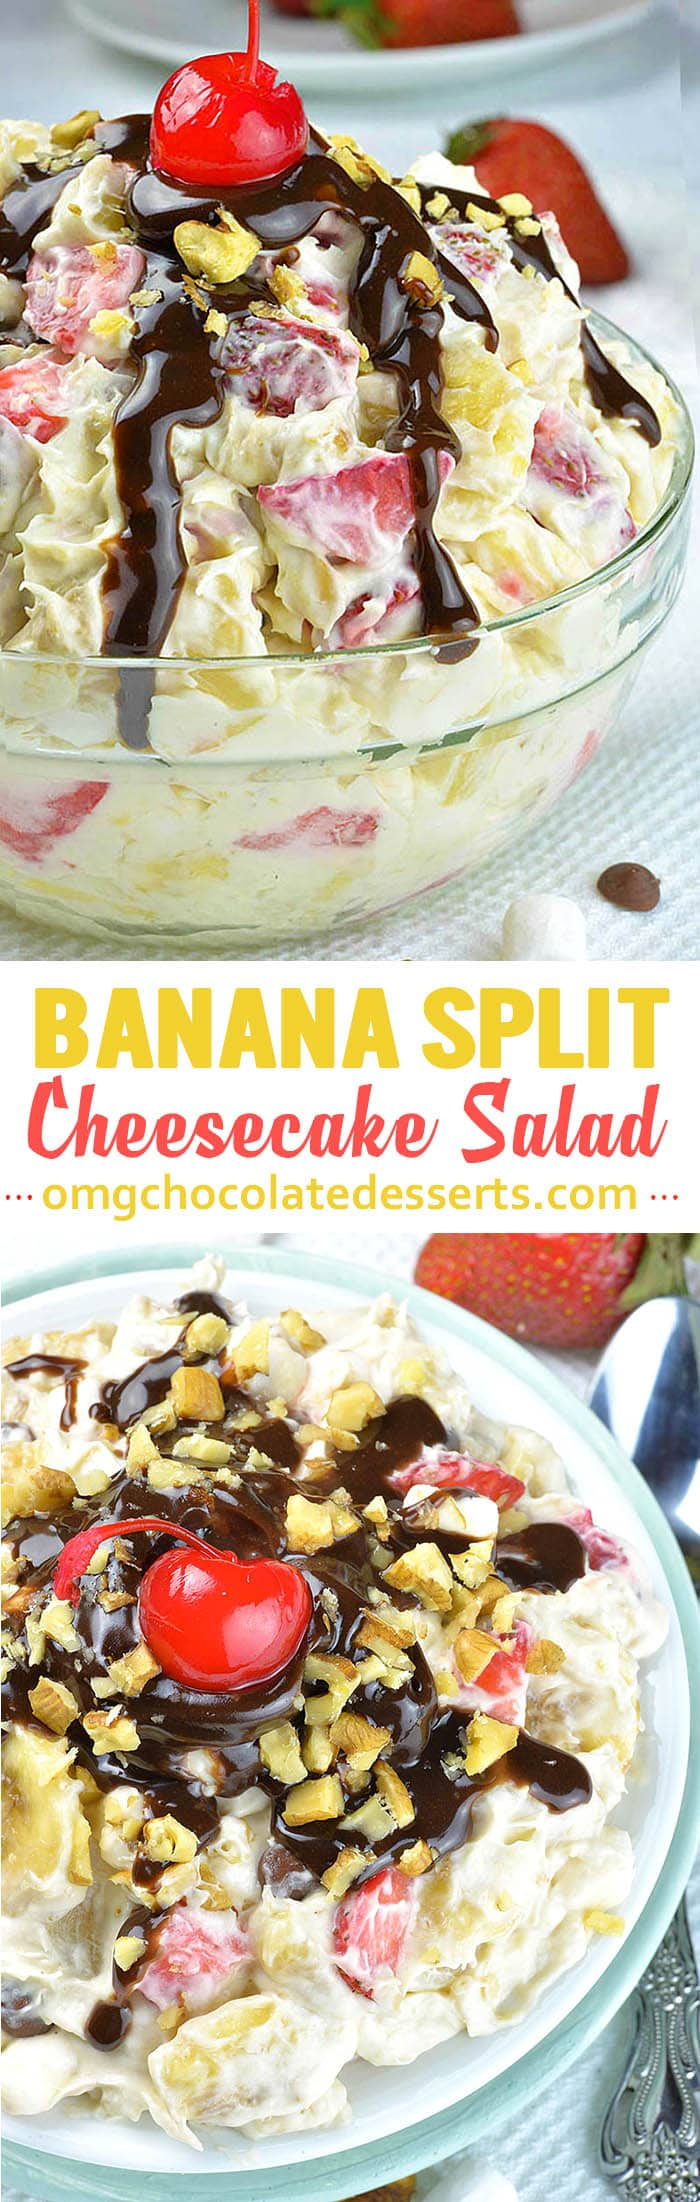 Easy Banana Split Dessert Recipe